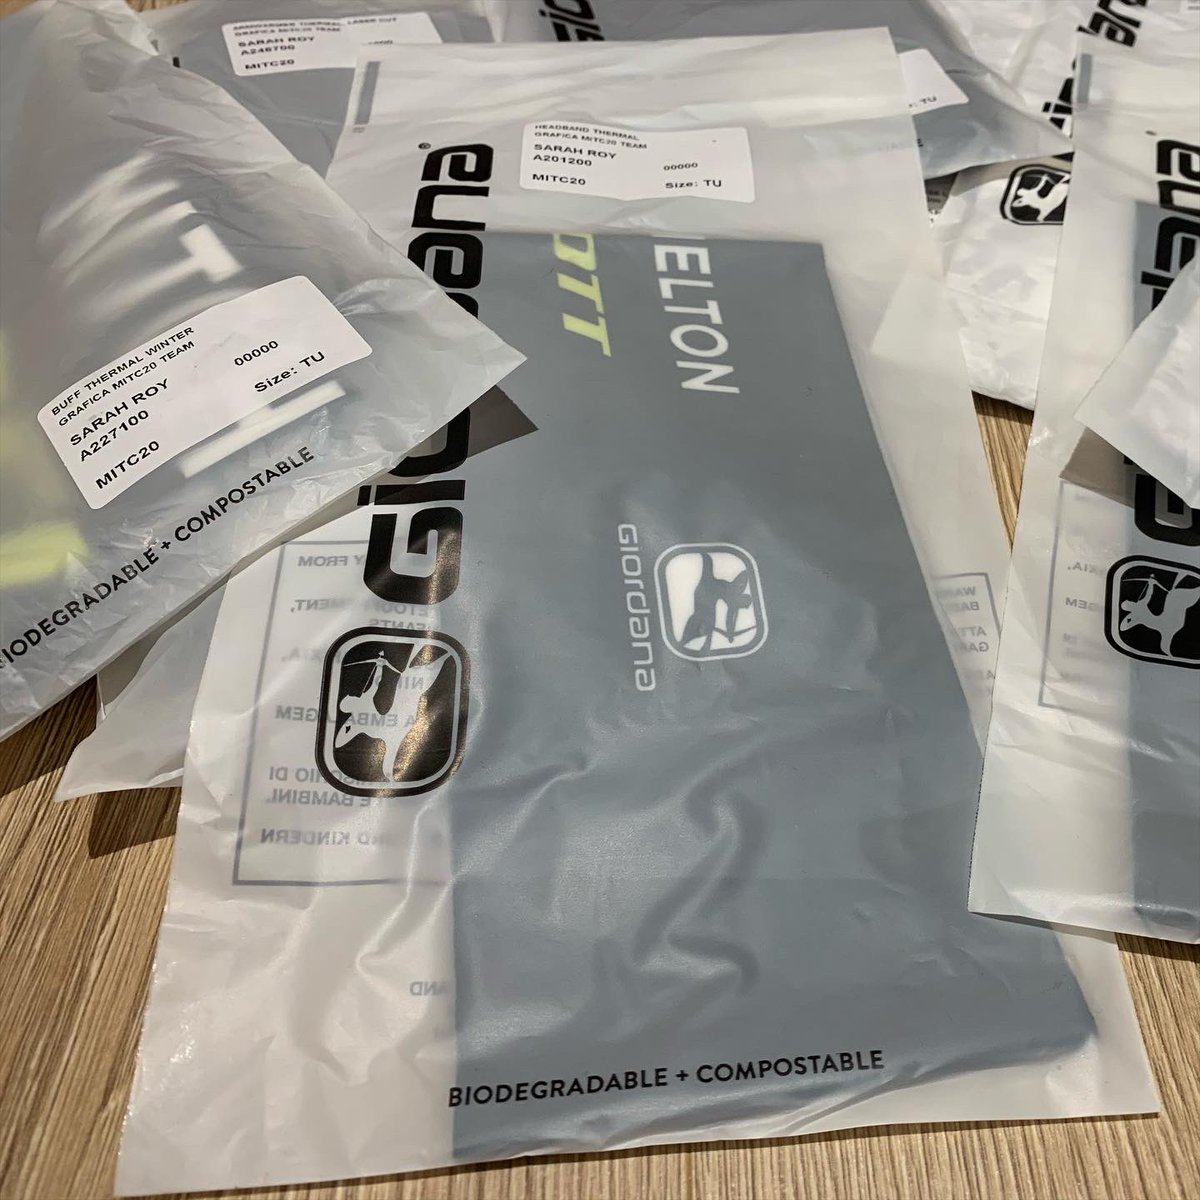 test Twitter Media - I'm proud to be associated with a brand that takes steps to reduce their waste. Giordana has replaced previous clothing packaging with a biodegradable, compostable alternative. Let's all aim to reduce waste where we can. Many hands make light work. Thank you, @giordanacycling https://t.co/2BQRfbxG1p